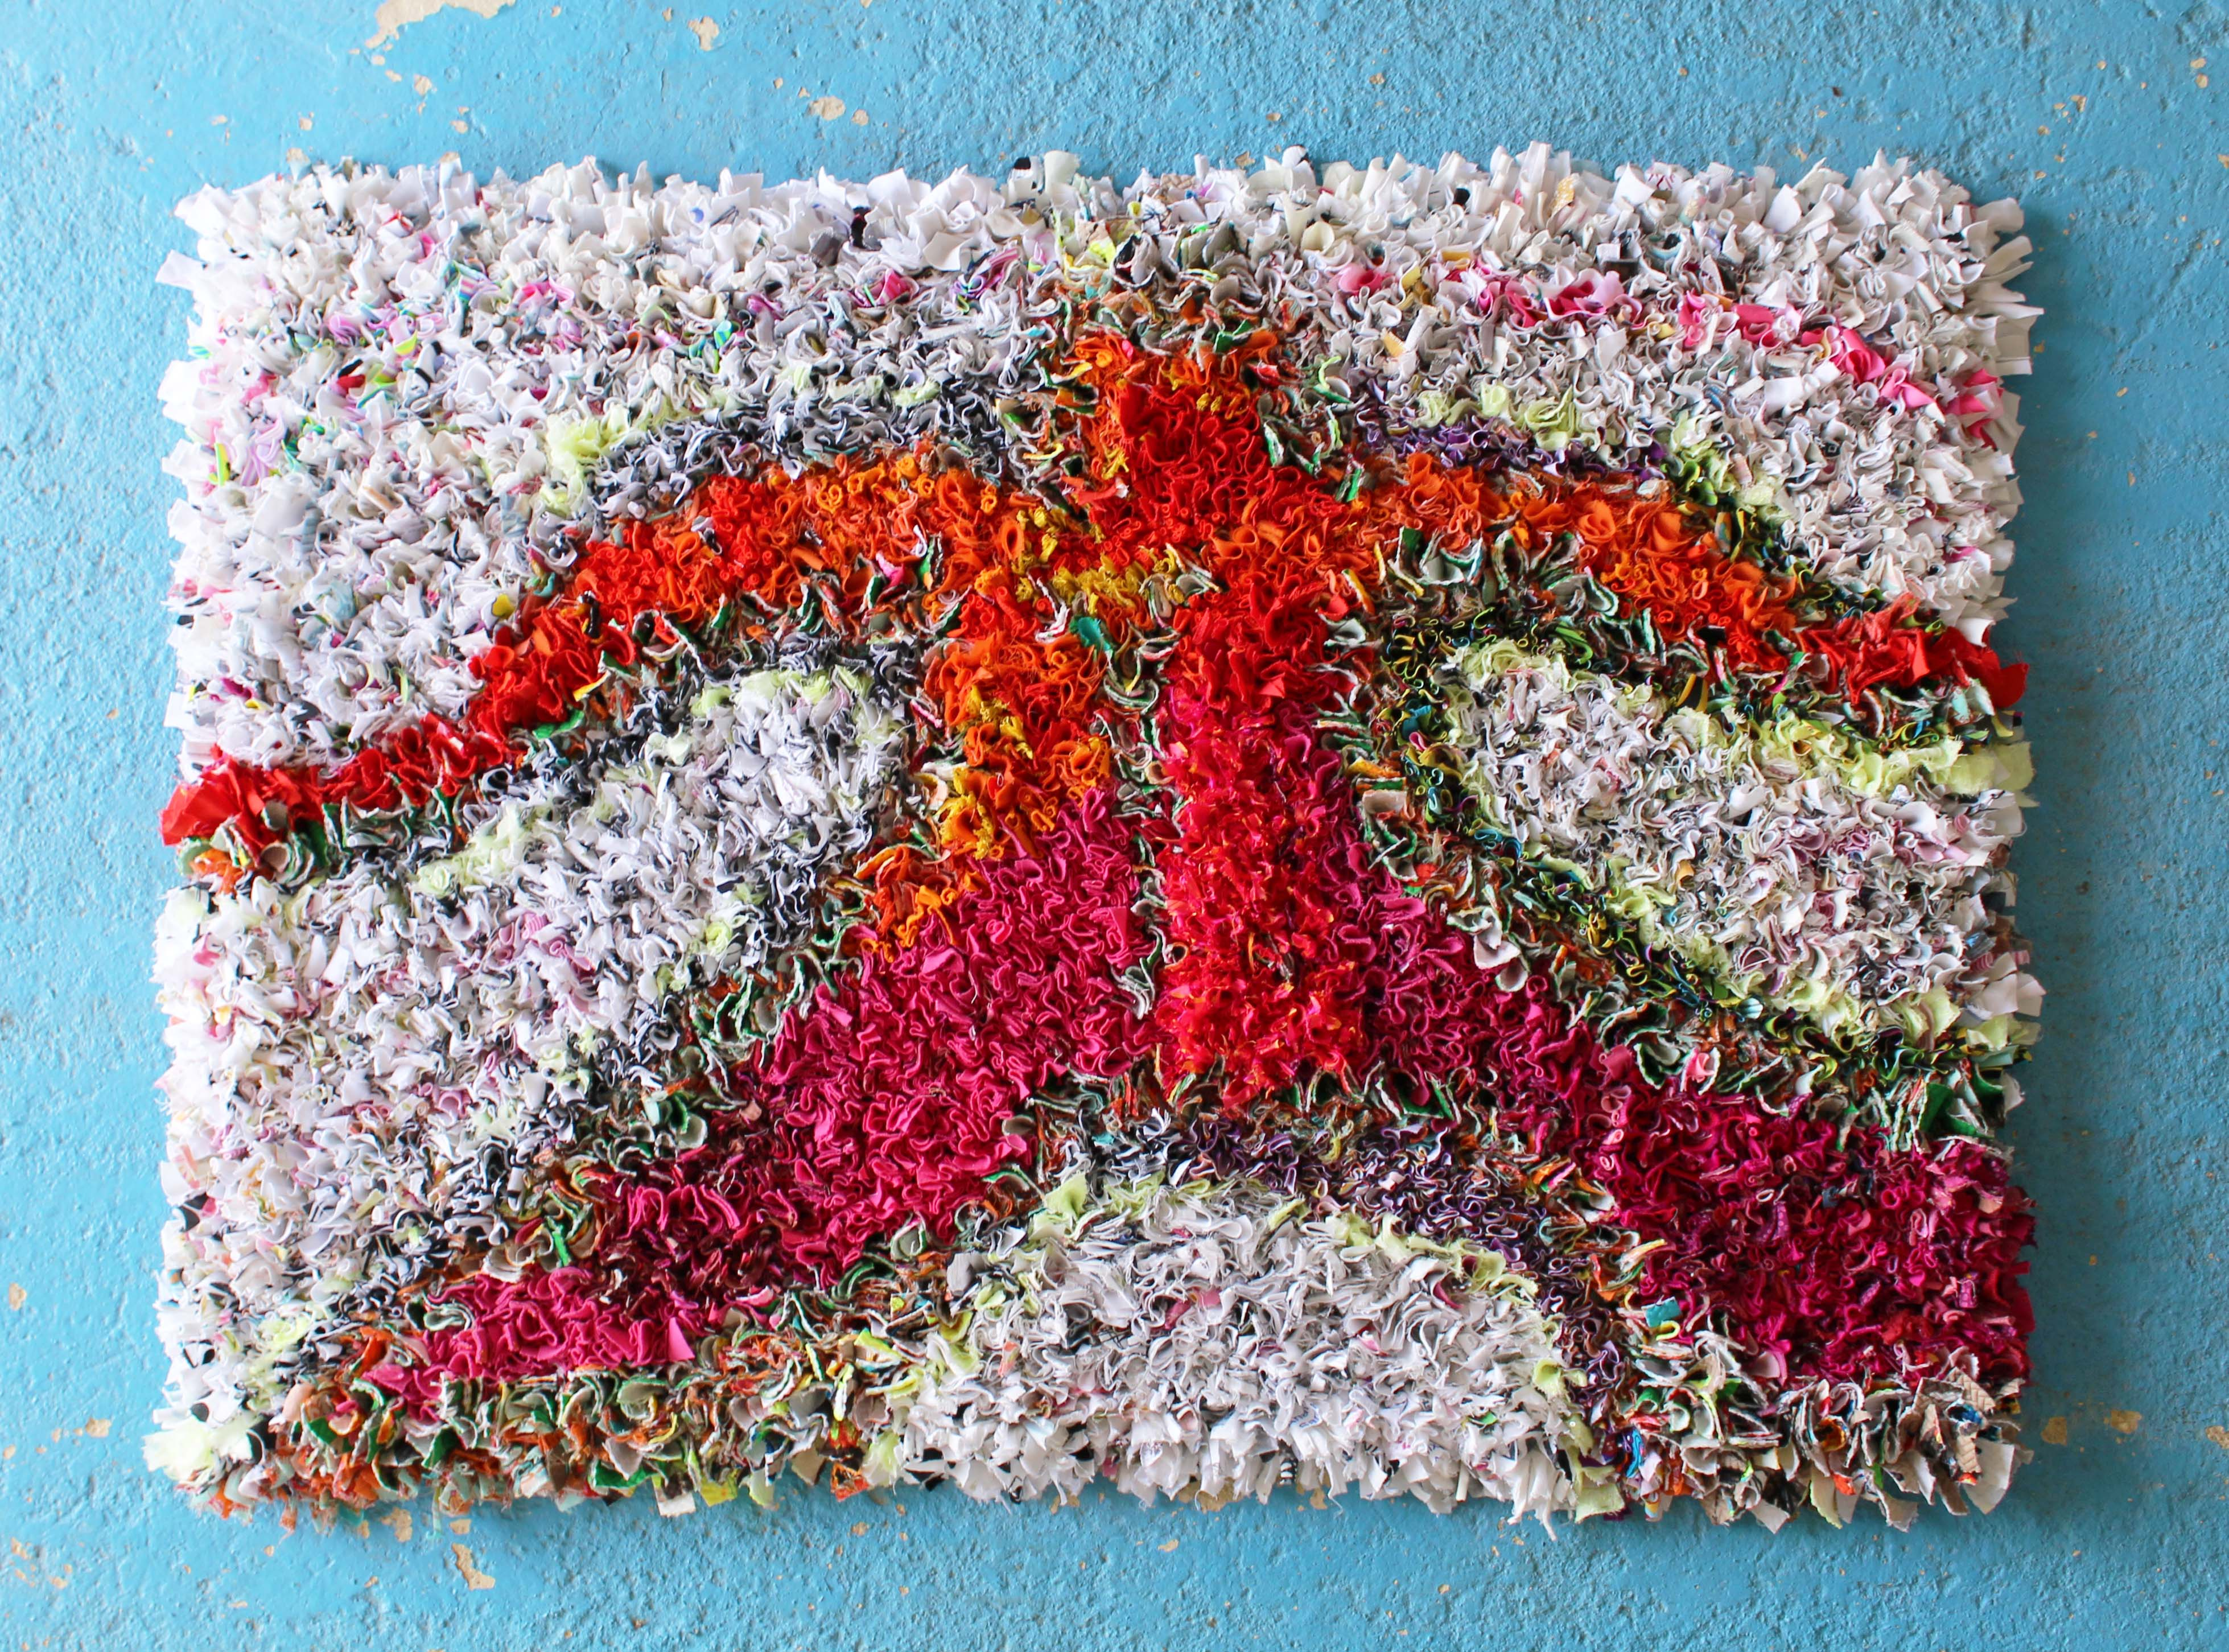 Beautiful rag rug shaped like a person in the shaggy rag rugging technique with orange and pink